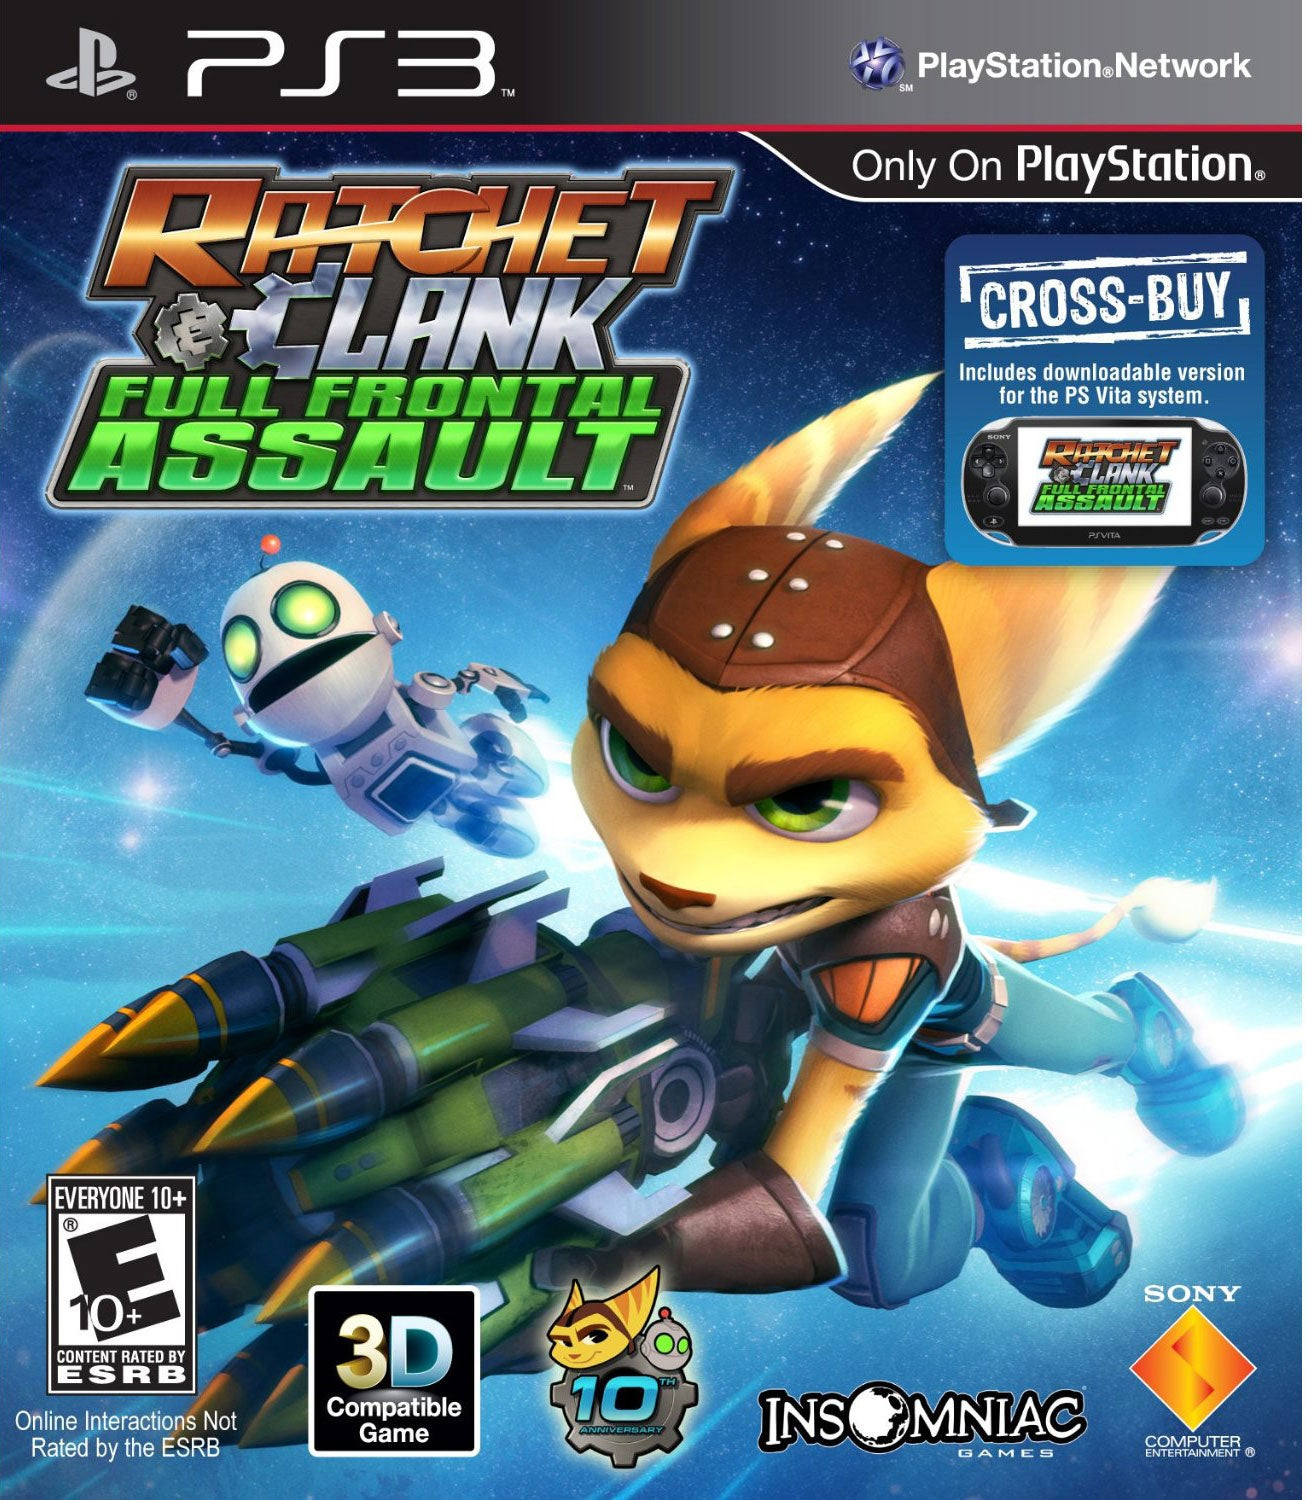 PS3 - Ratchet & Clank: Full Frontal Assault - Thumbnail 0